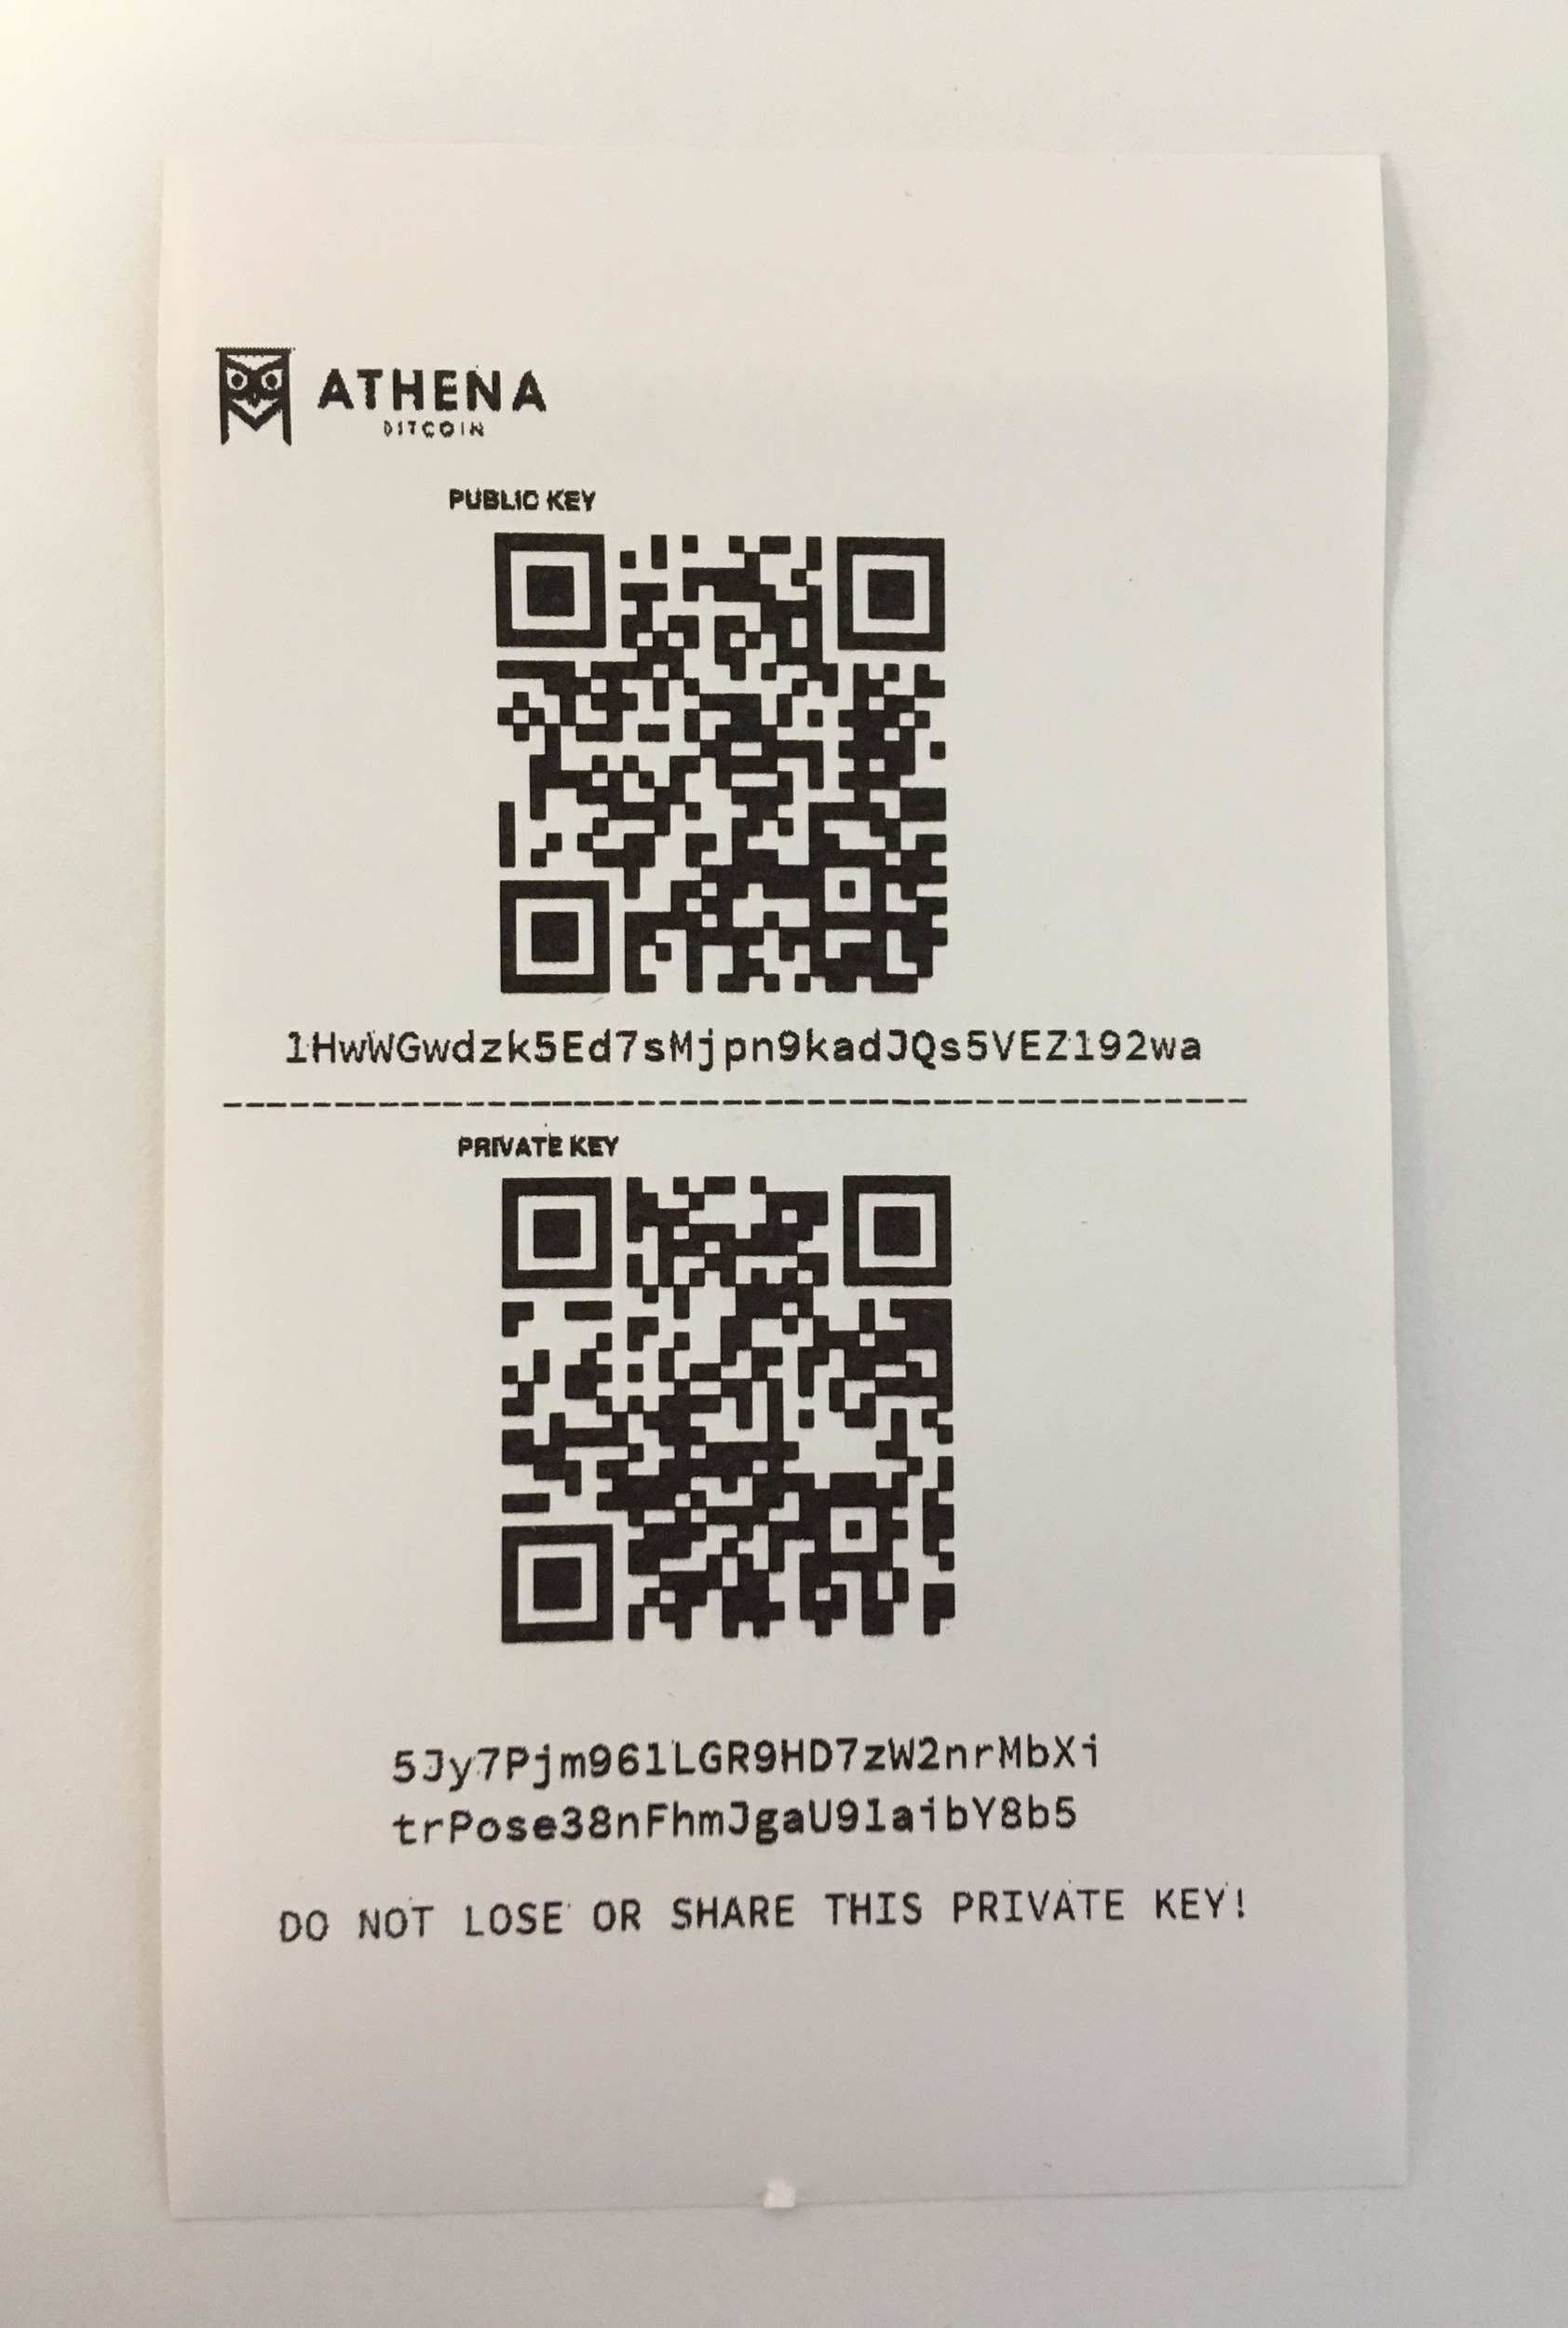 Athena  Bitcoin  Paper Wallet - Note that the public address begins with  1  and the private key begins with  5